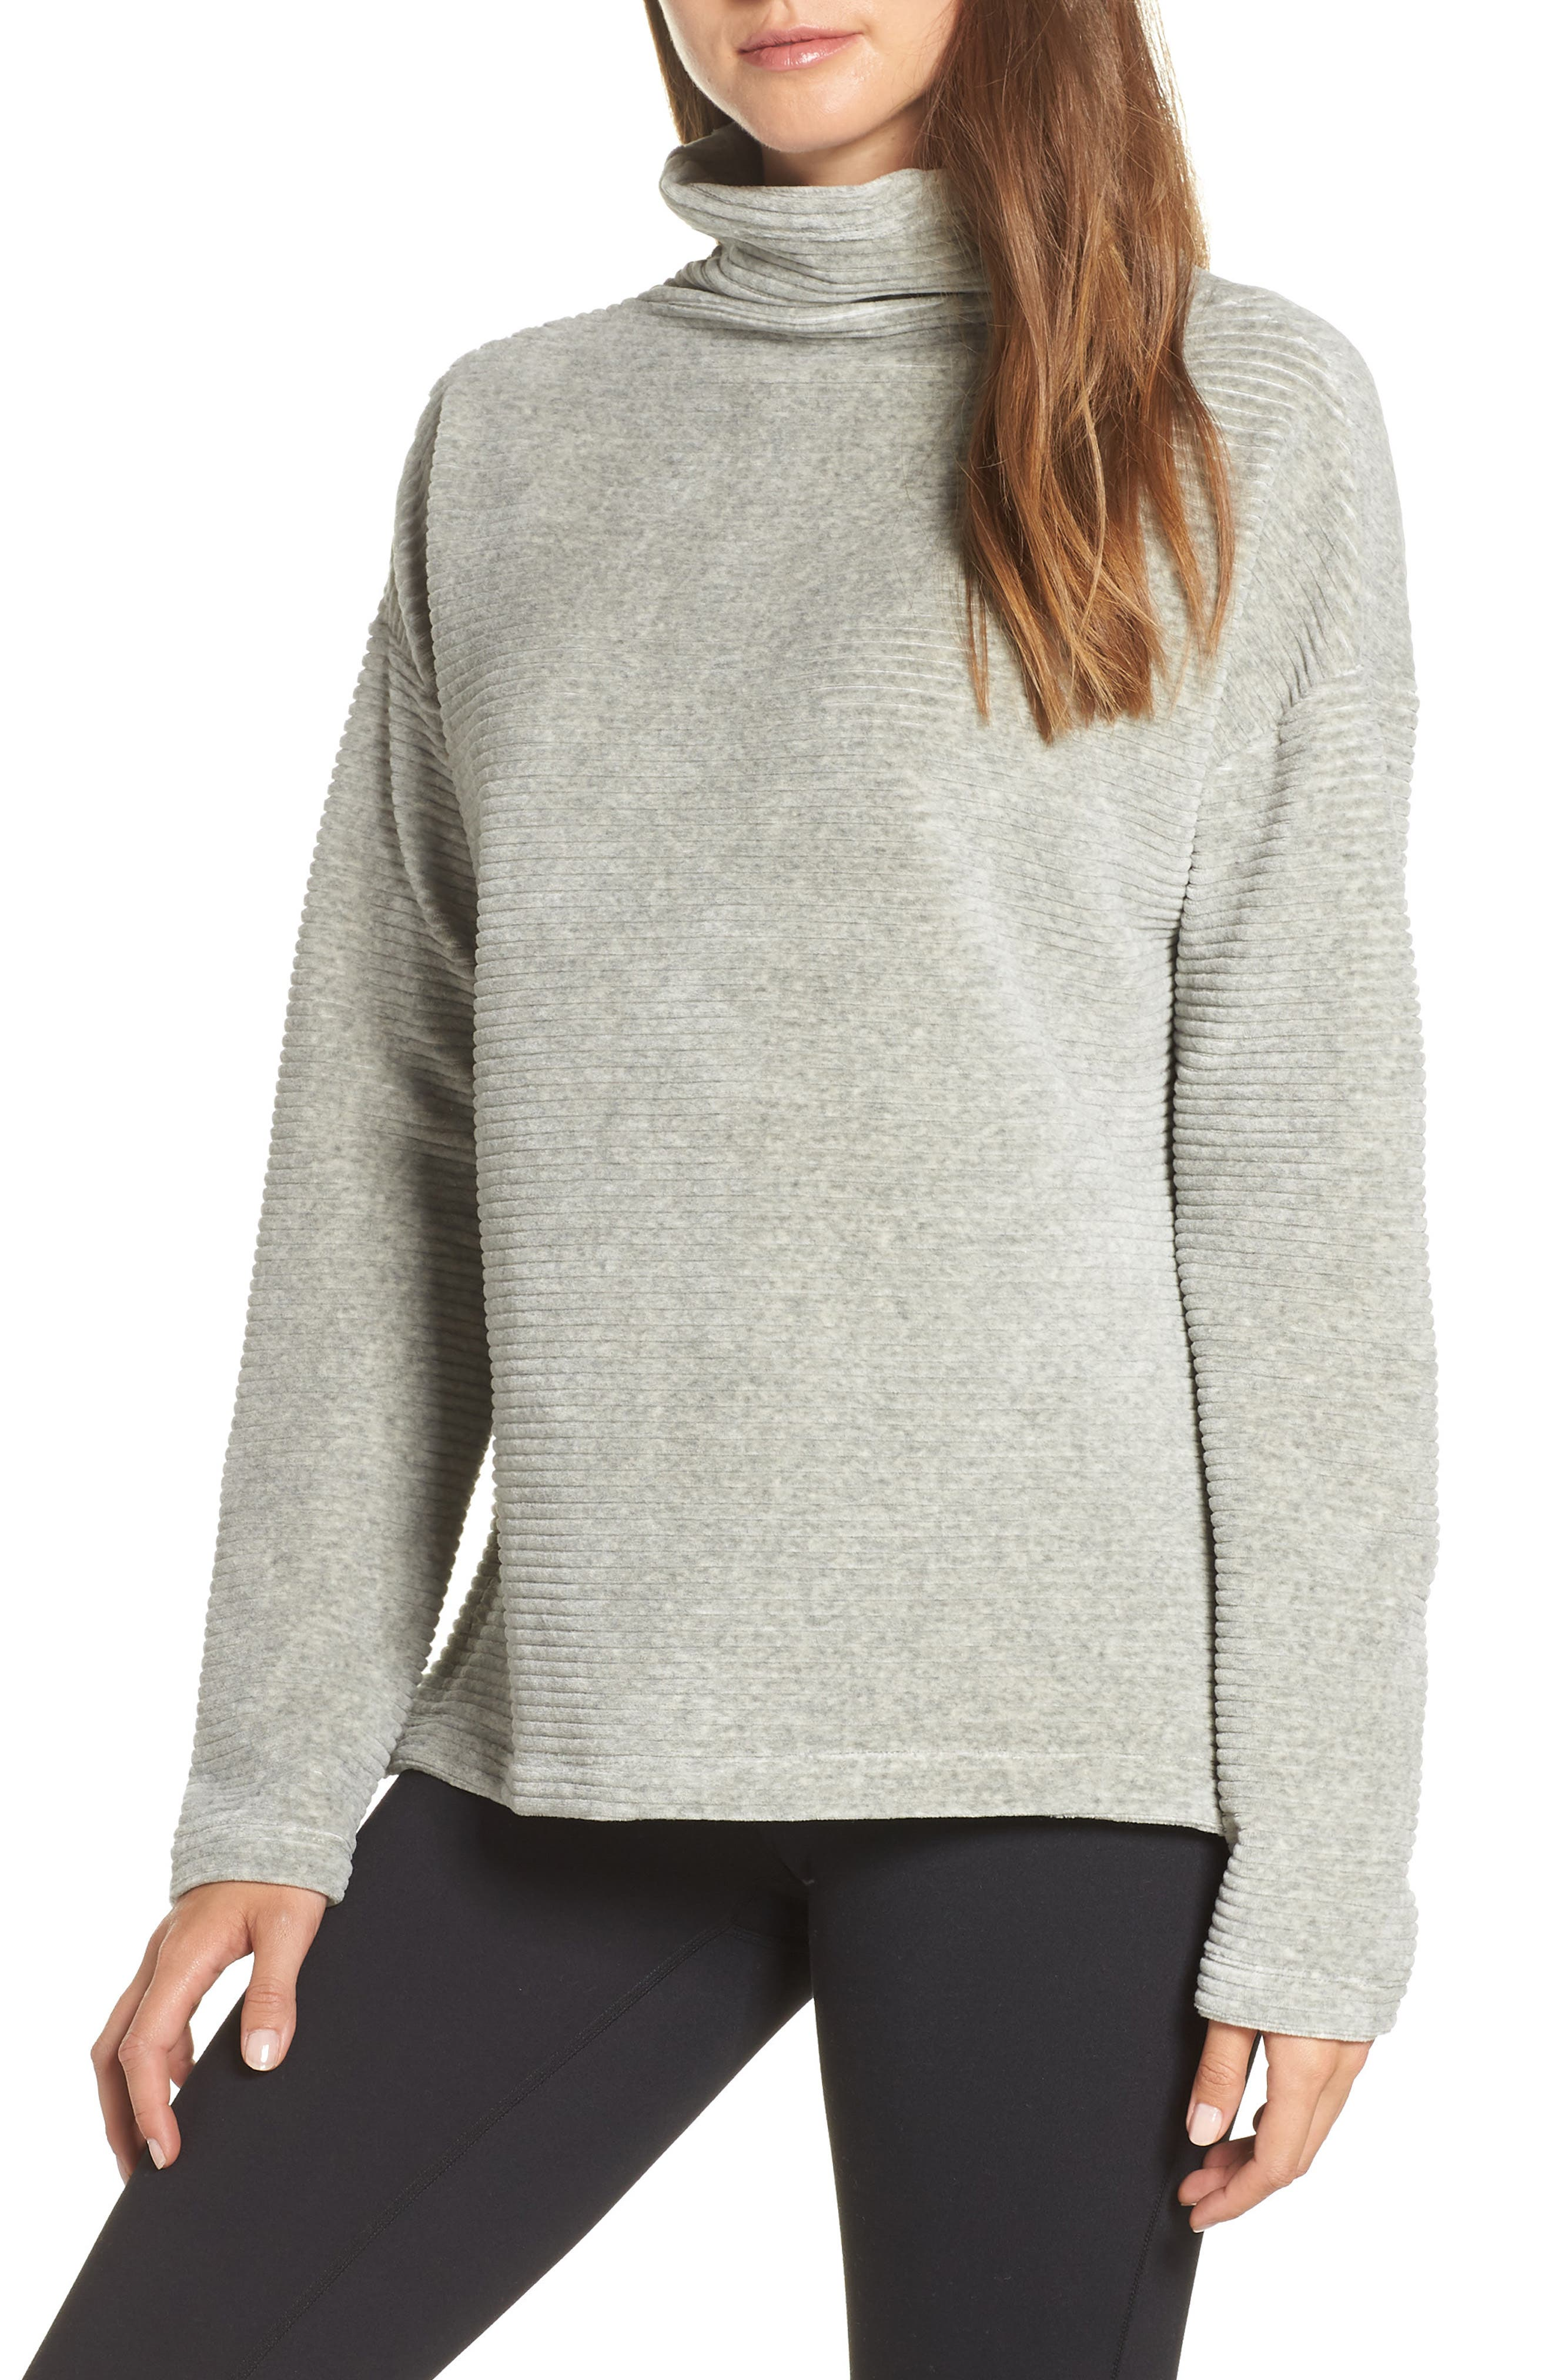 Bright Side Pullover,                         Main,                         color, GREY CRYSTAL